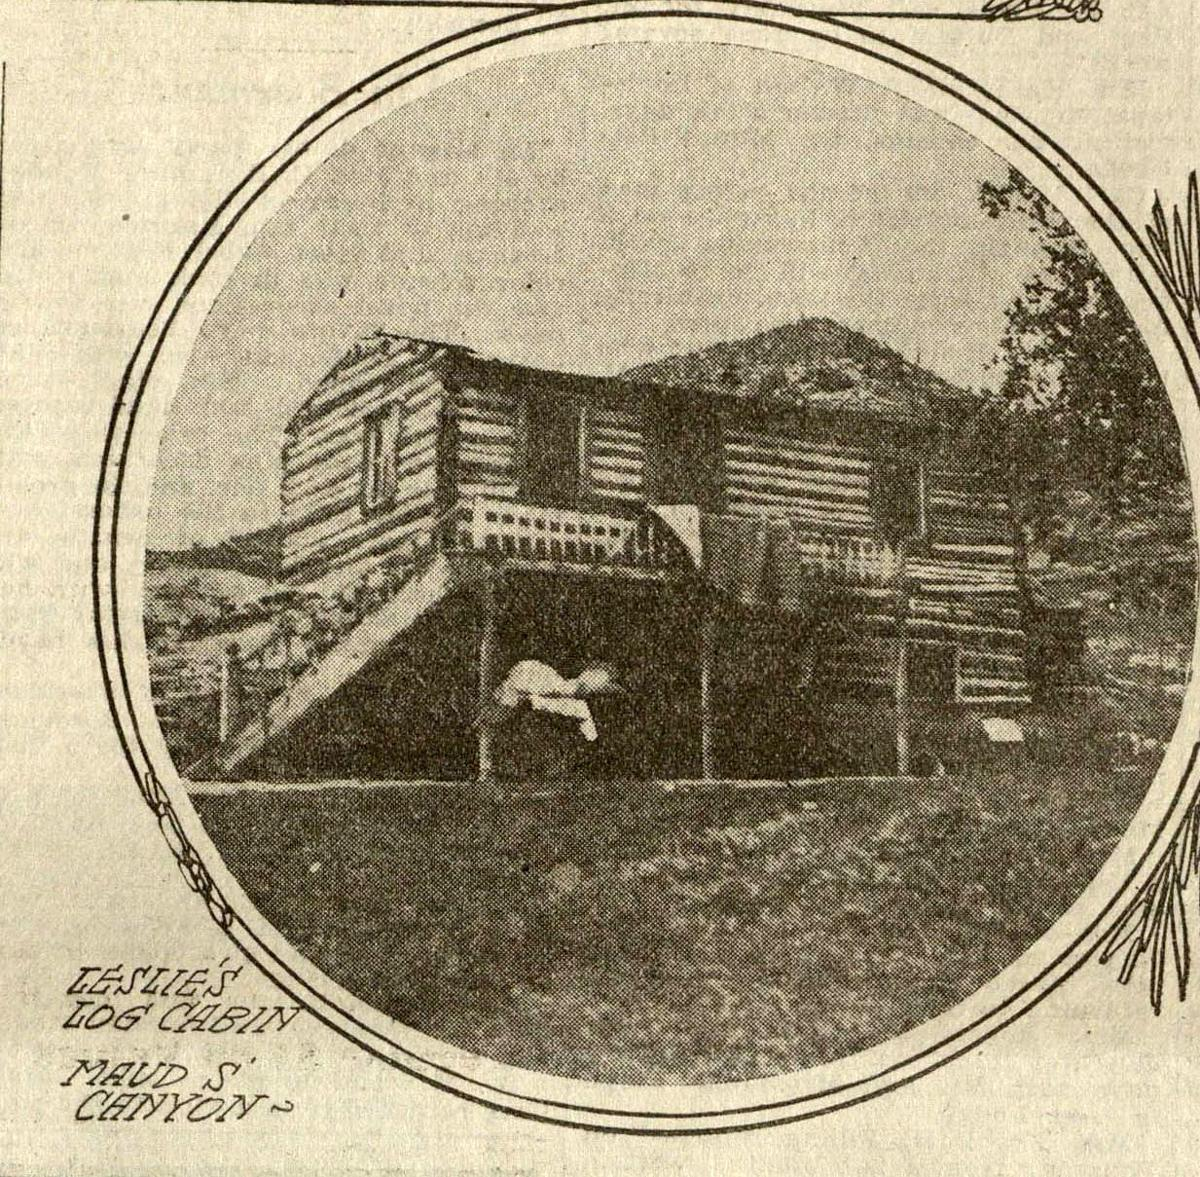 Leslie's cabin, Maud S Canyon